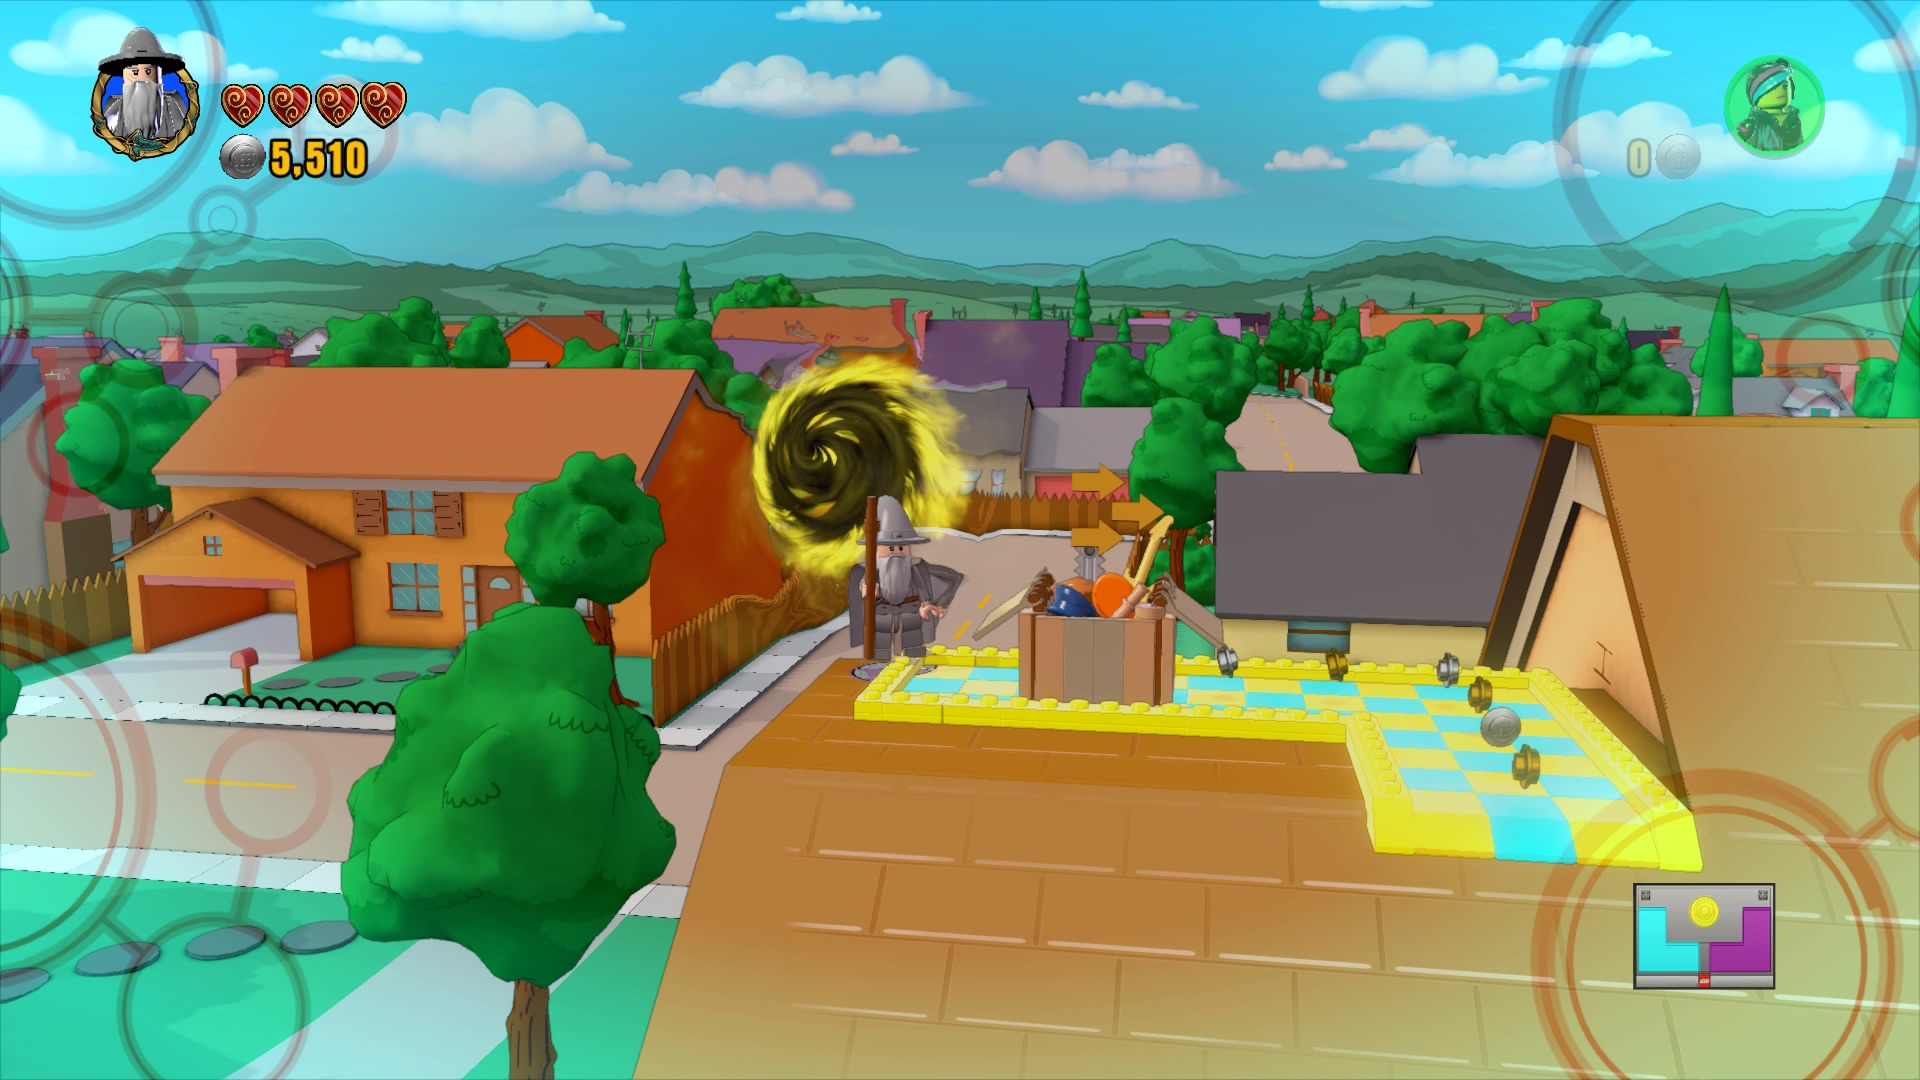 lego dimensions story mode walkthrough walkthroughs the escapist